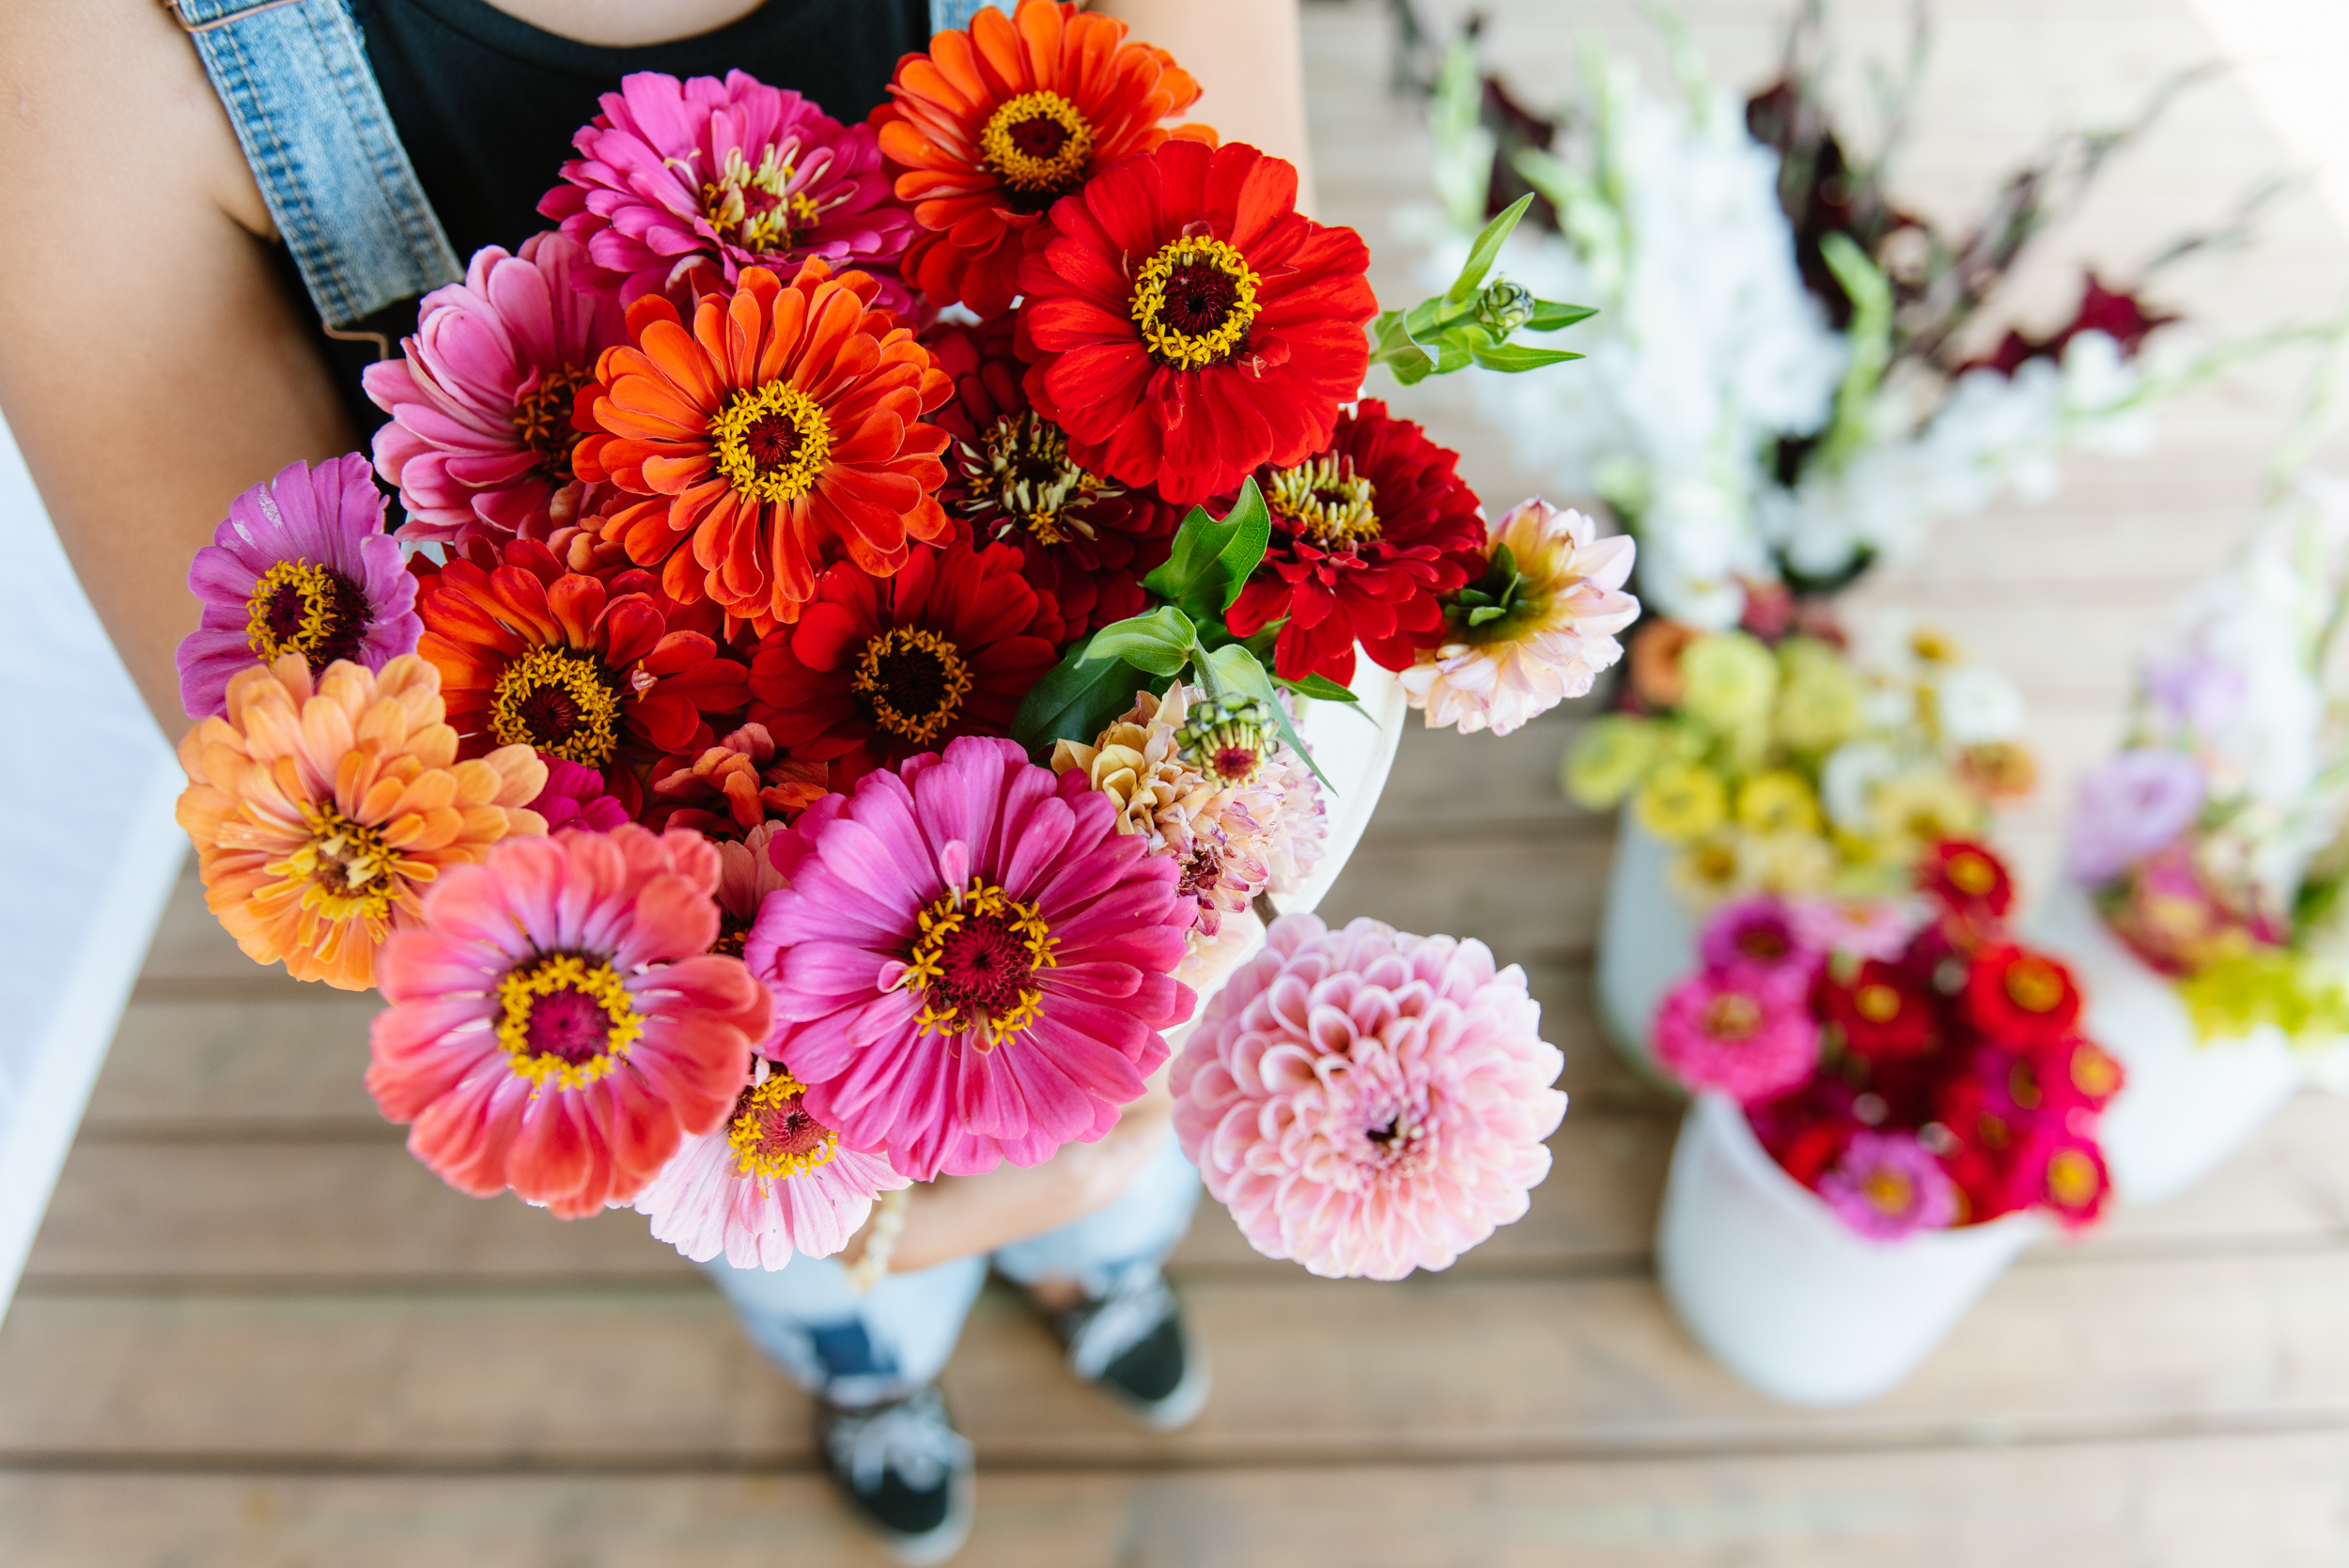 Join the club - Winter is long in Alberta. You (and all the lovely humans in your life) deserve fresh, beautiful flowers all summer. Join our Fresh Cut Flower Club and we'll set you up with a weekly subscription to get a generous bouquet of our best flowers and foliage.